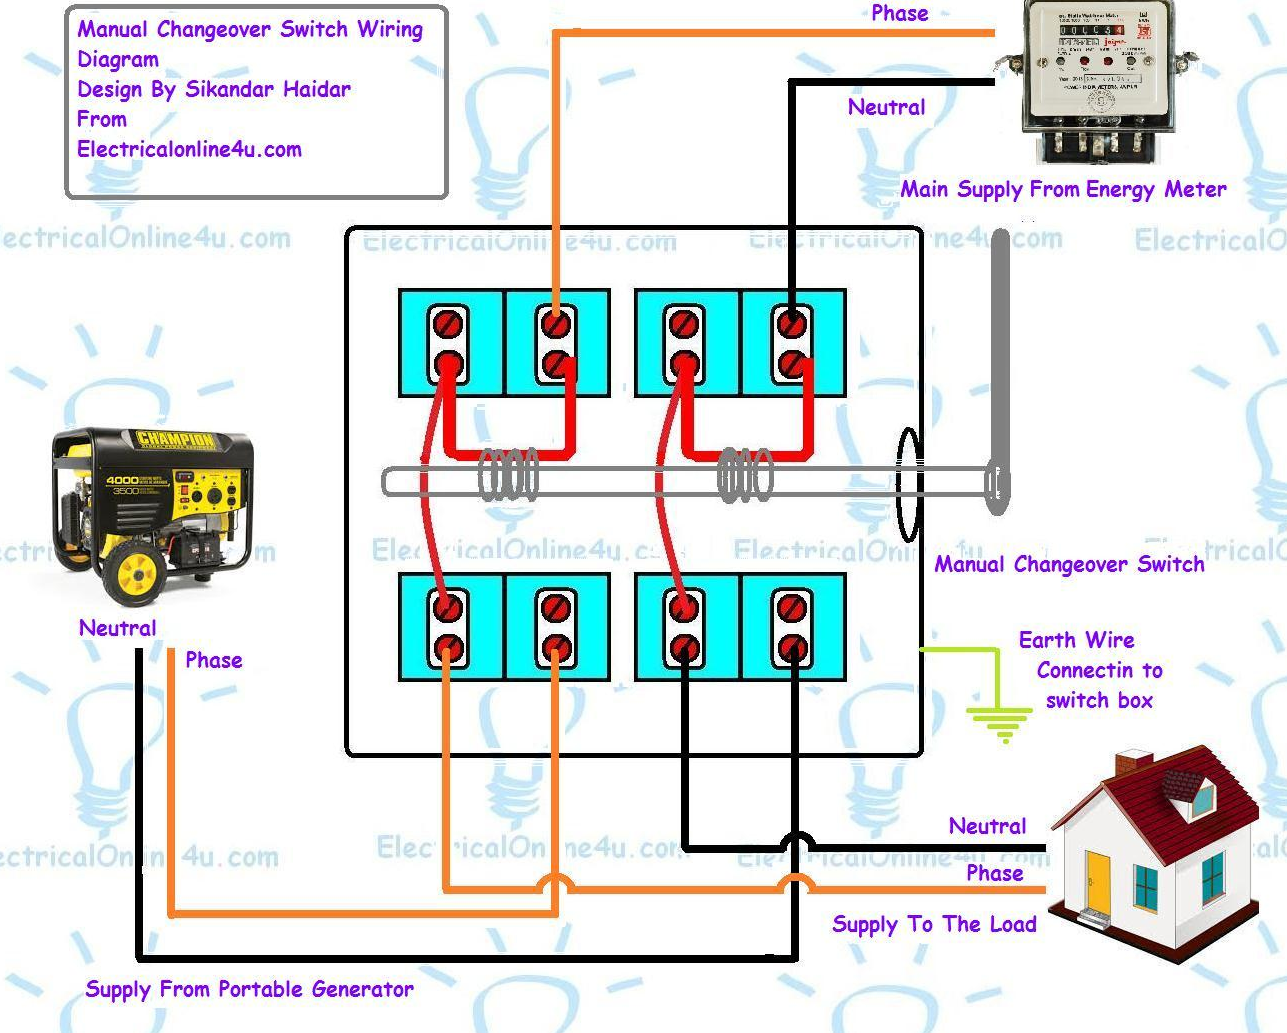 manual%2Bchangeover%2Bswitch%2Bwiring%2Bdiagram manual changeover switch wiring diagram for portable generator electrical switch wiring diagram at bayanpartner.co